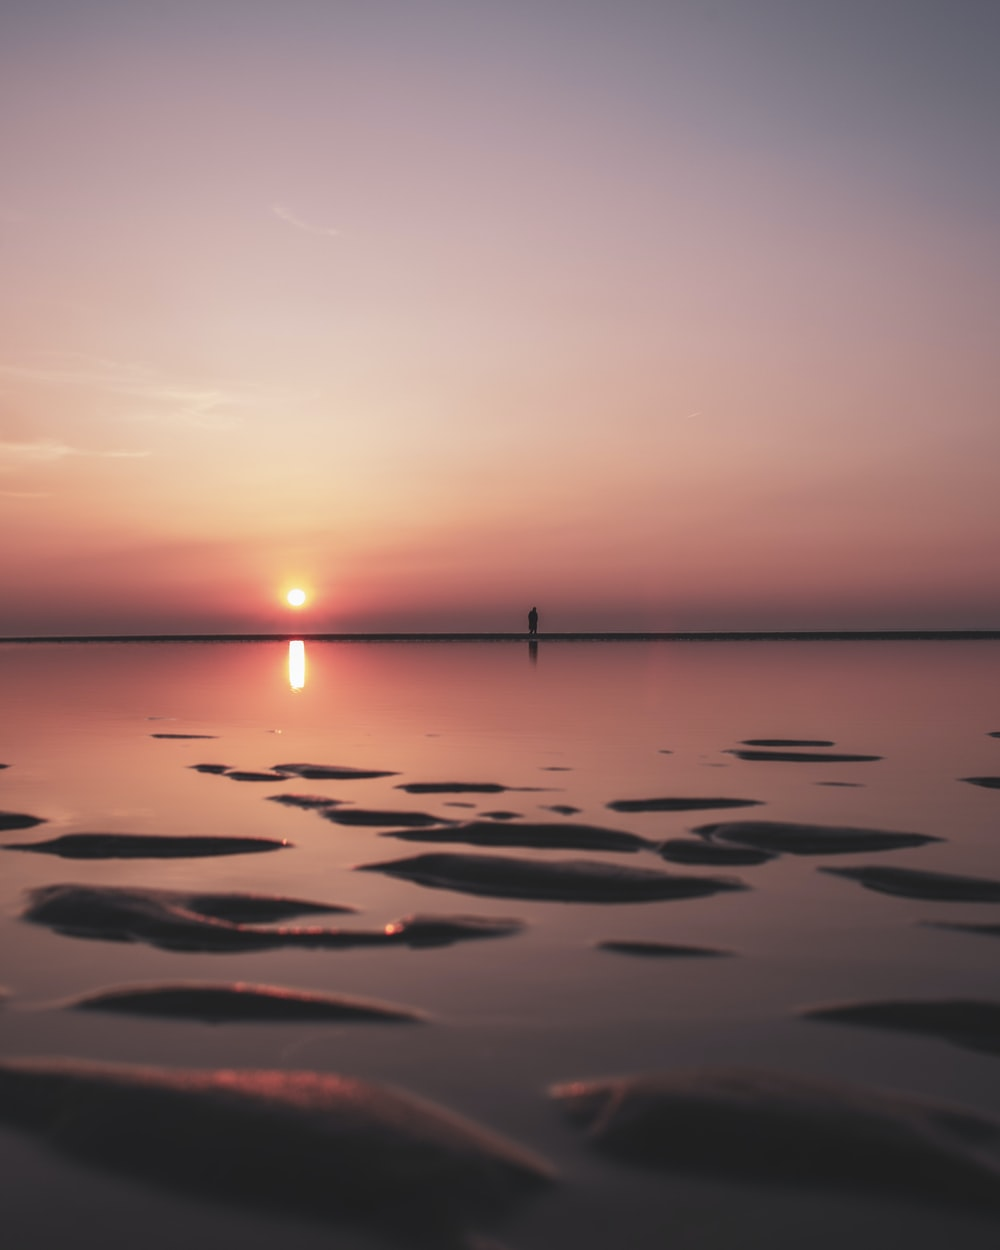 calm sea under gray sky during sunset